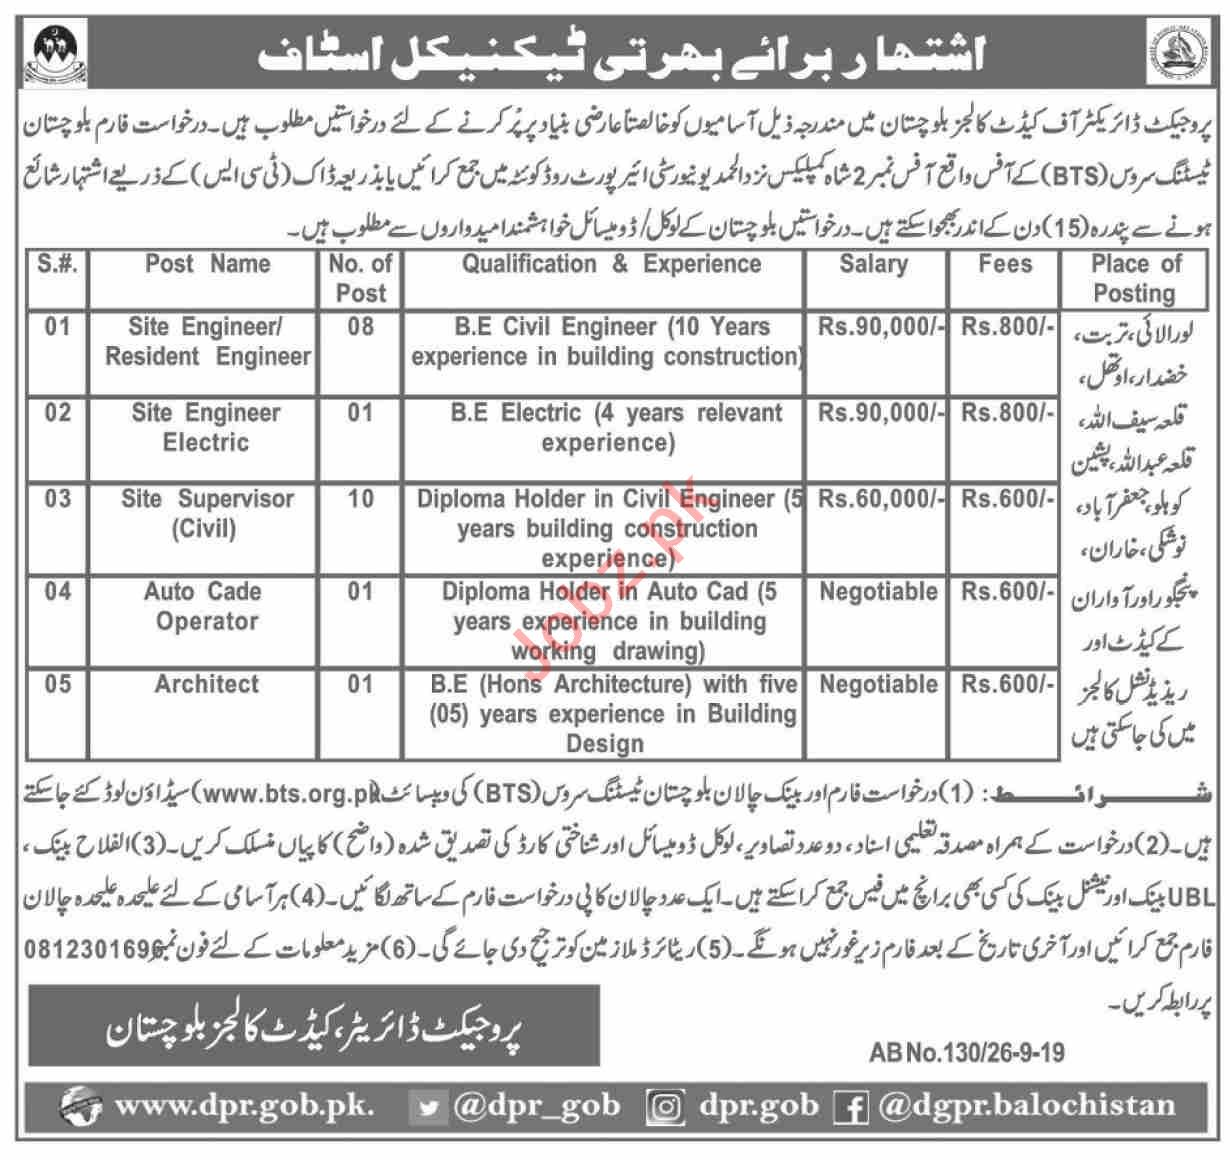 Project Director of Cadet Colleges Balochistan Jobs 2019